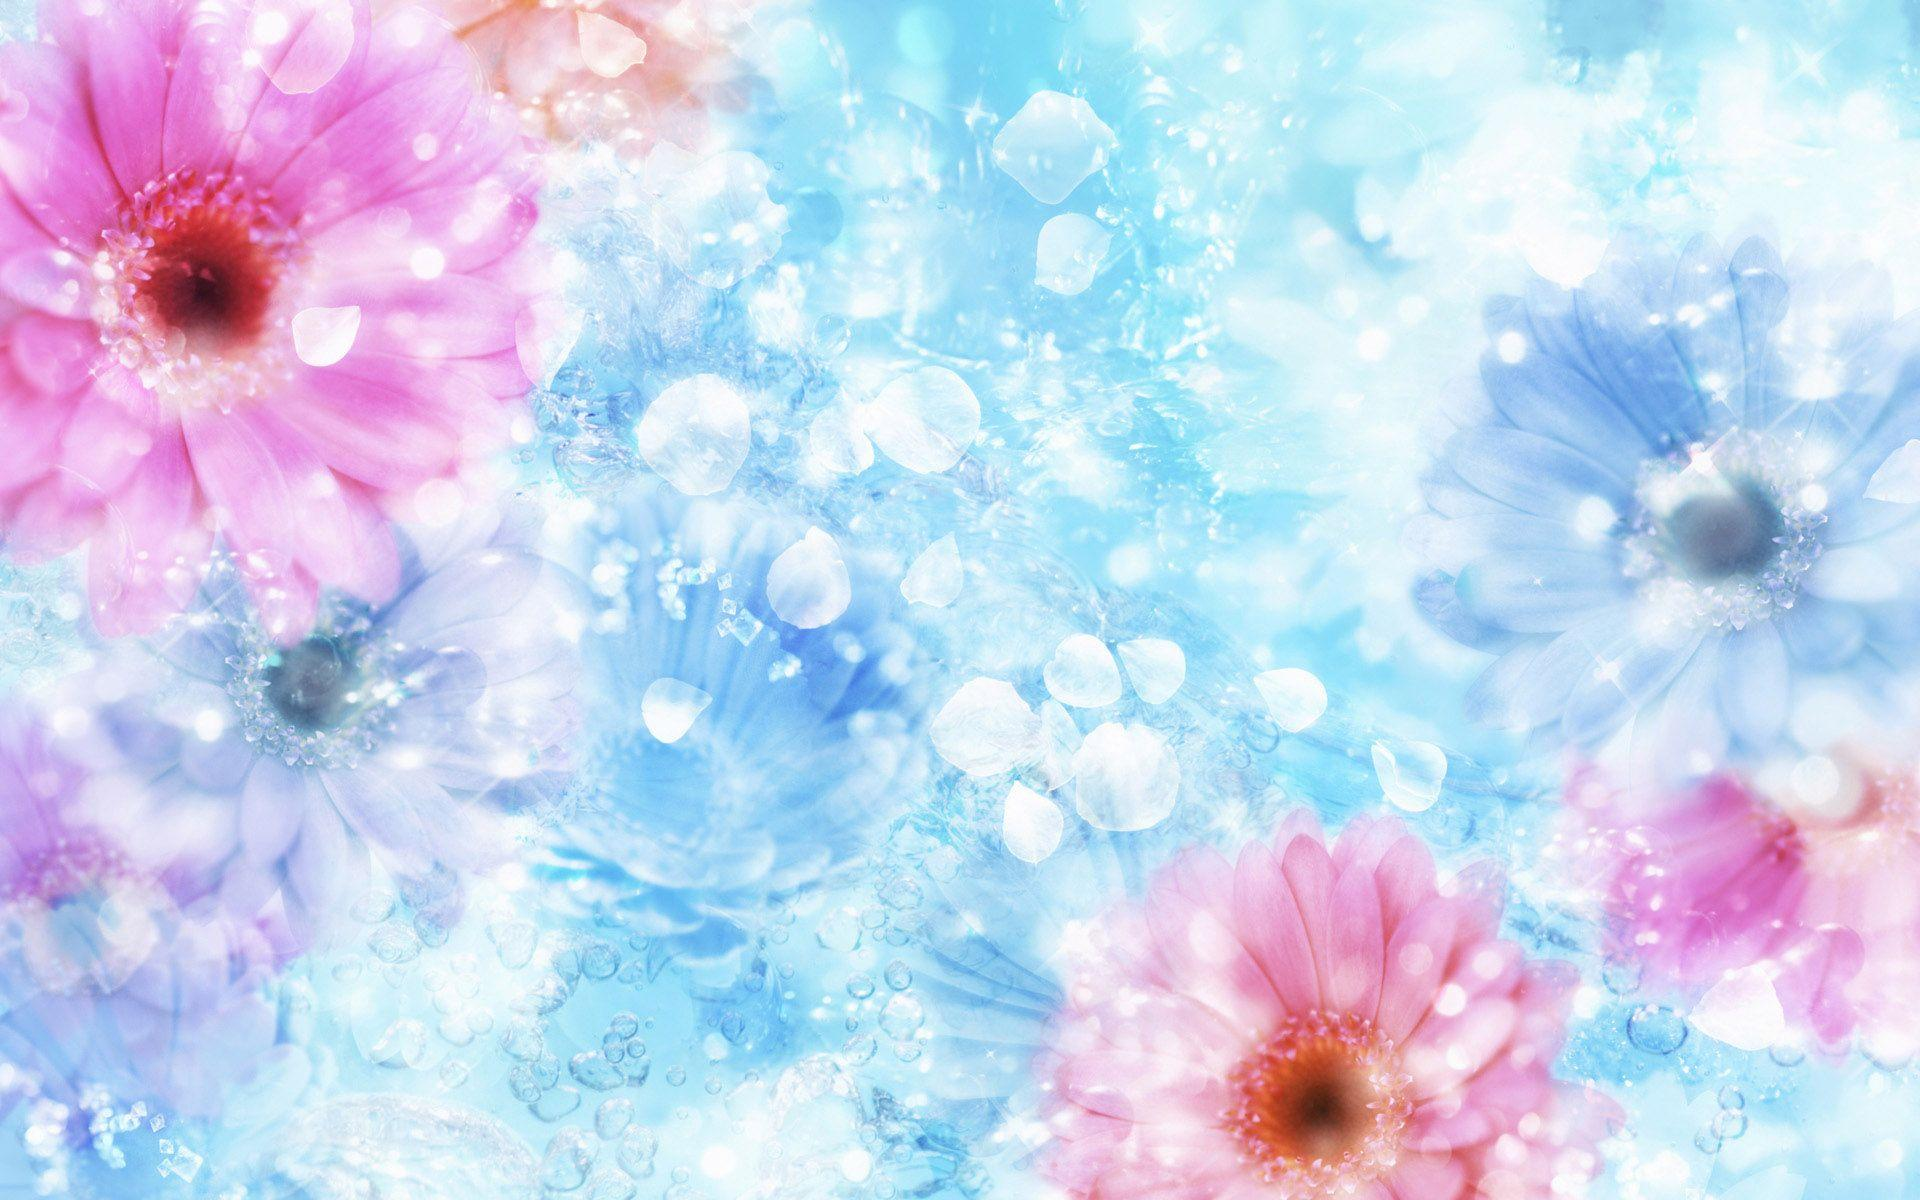 Flower Backgrounds Wallpapers - Wallpaper Cave